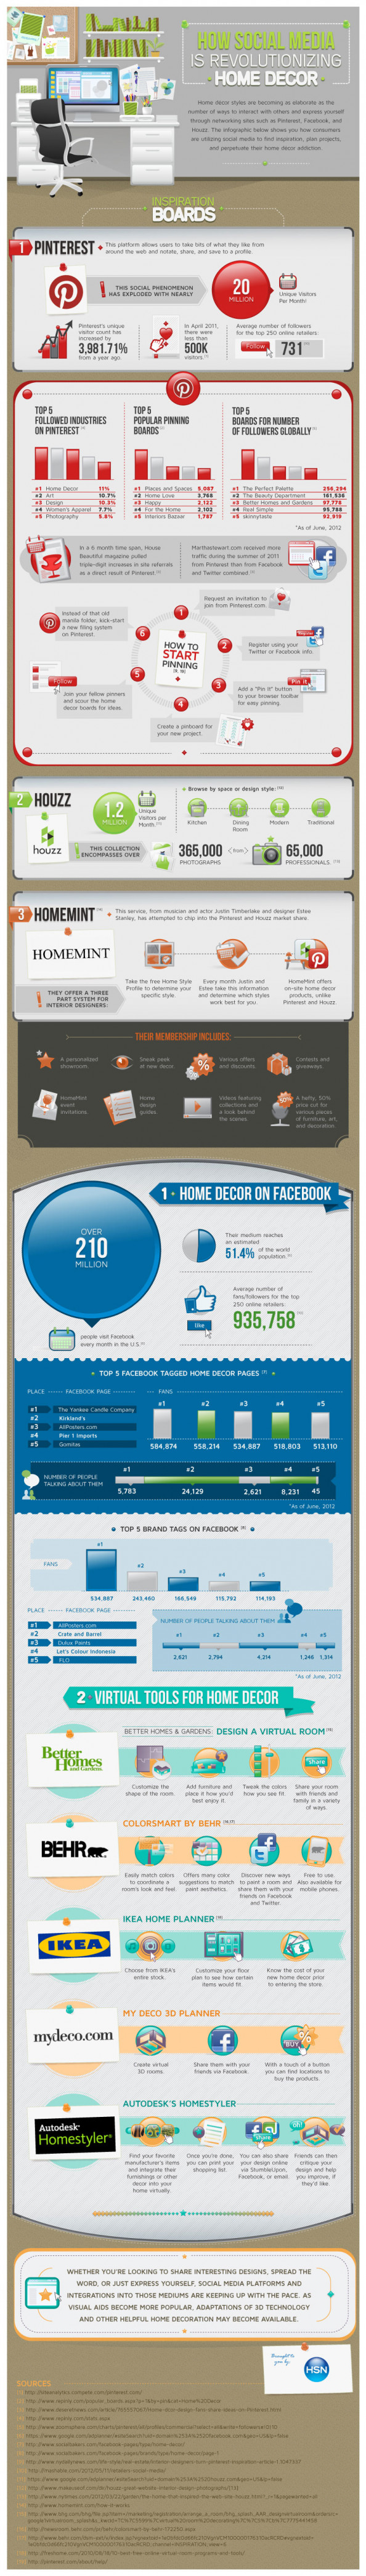 How Social Media is Revolutionizing Home Decor Infographic